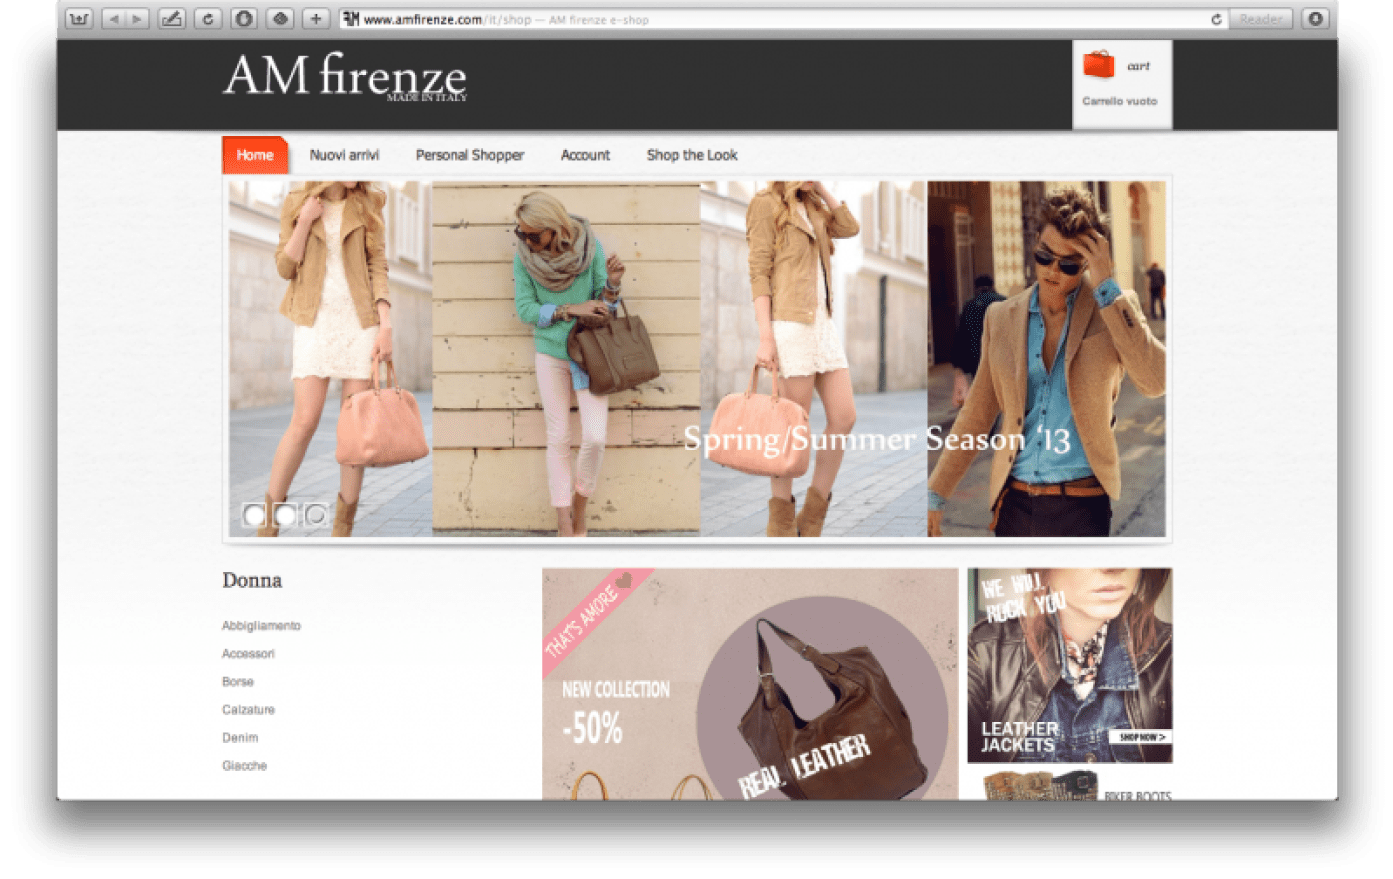 AMfirenze Shop